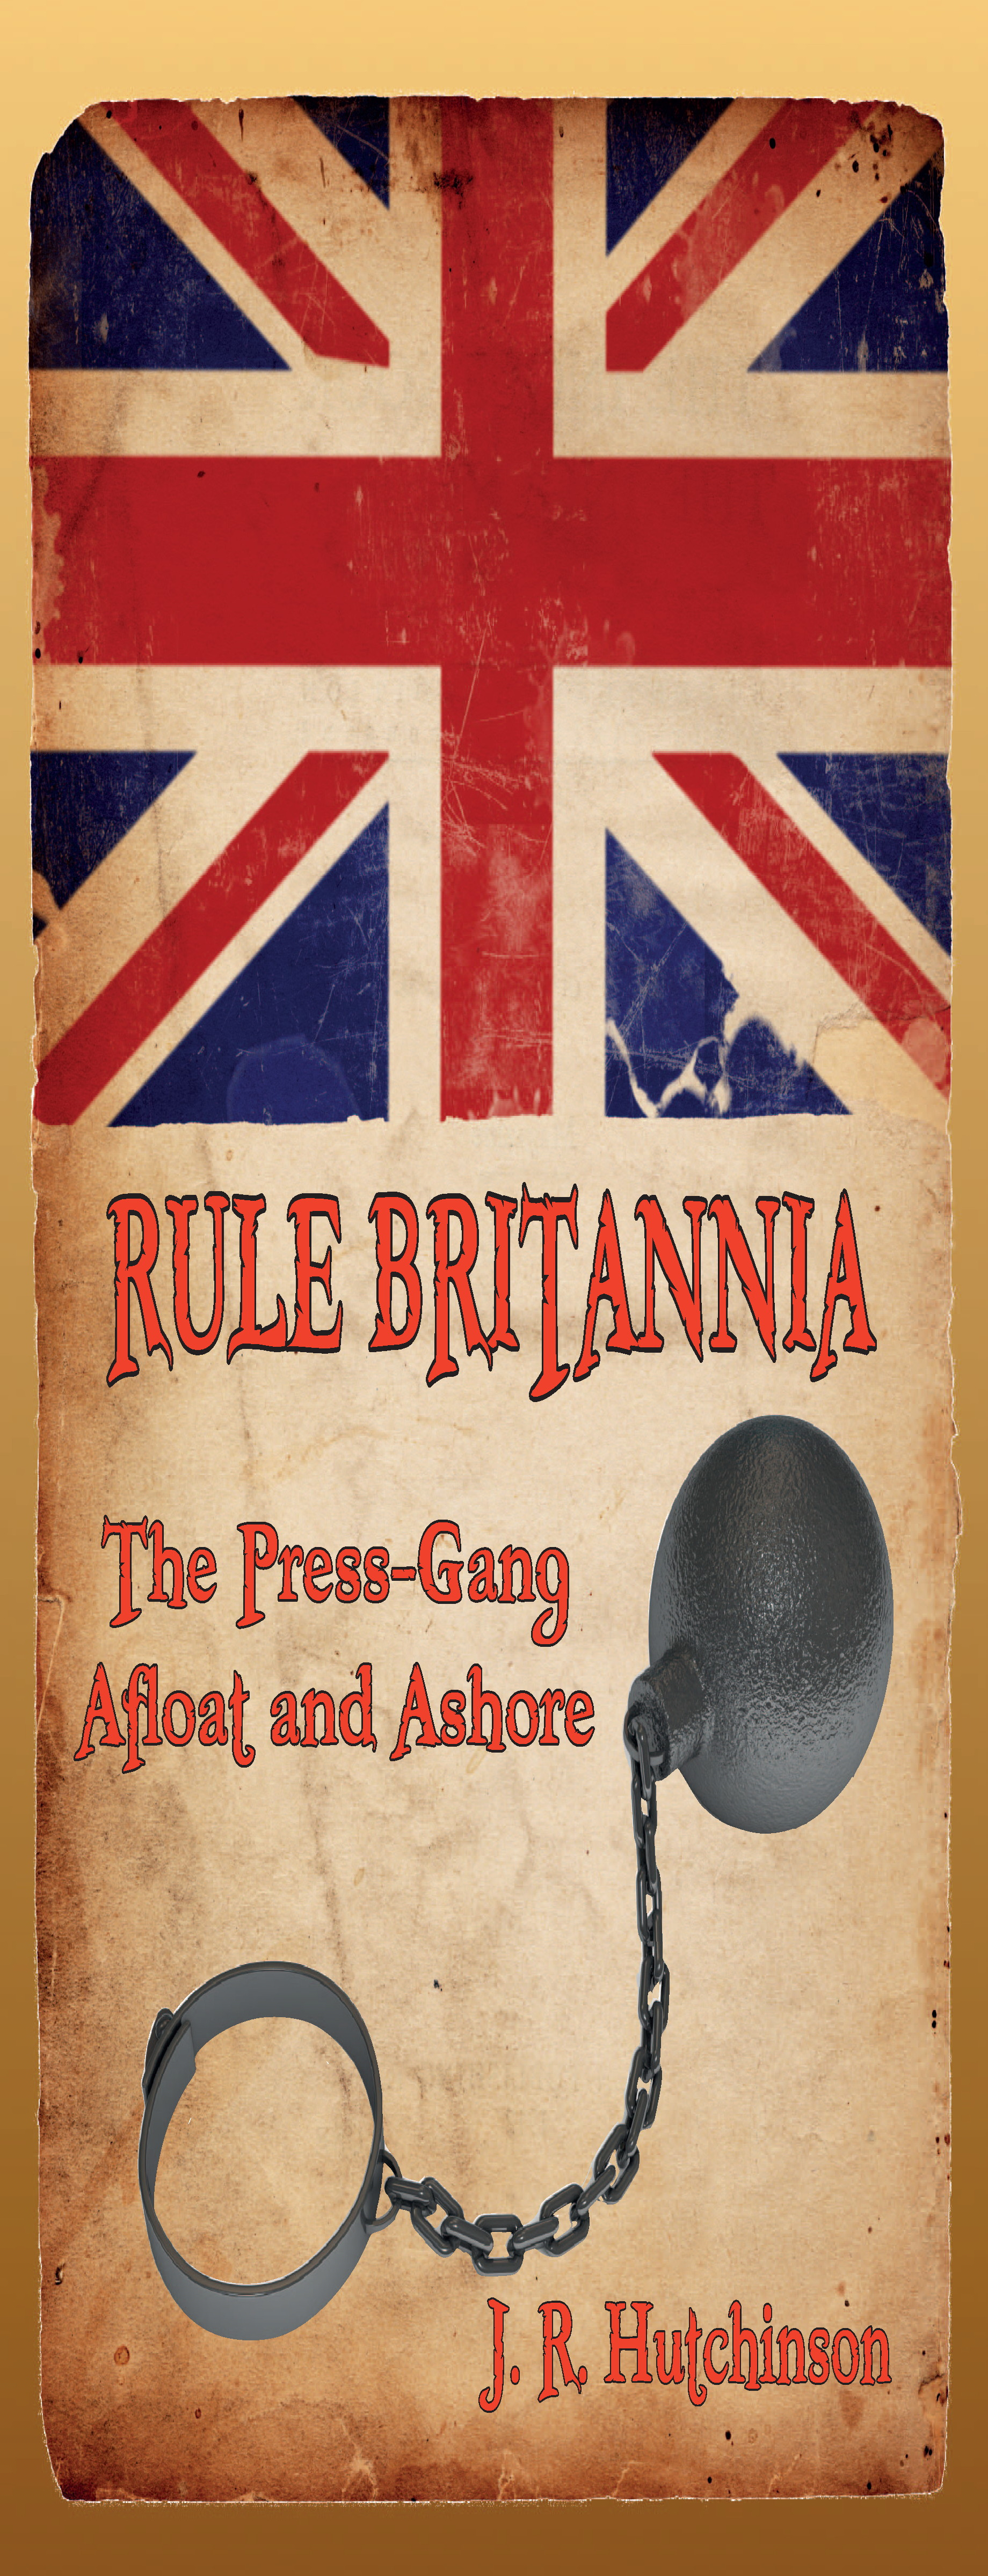 RULE BRITANNIA: The Press-Gang Afloat and Ashore By: J. R. Hutchinson